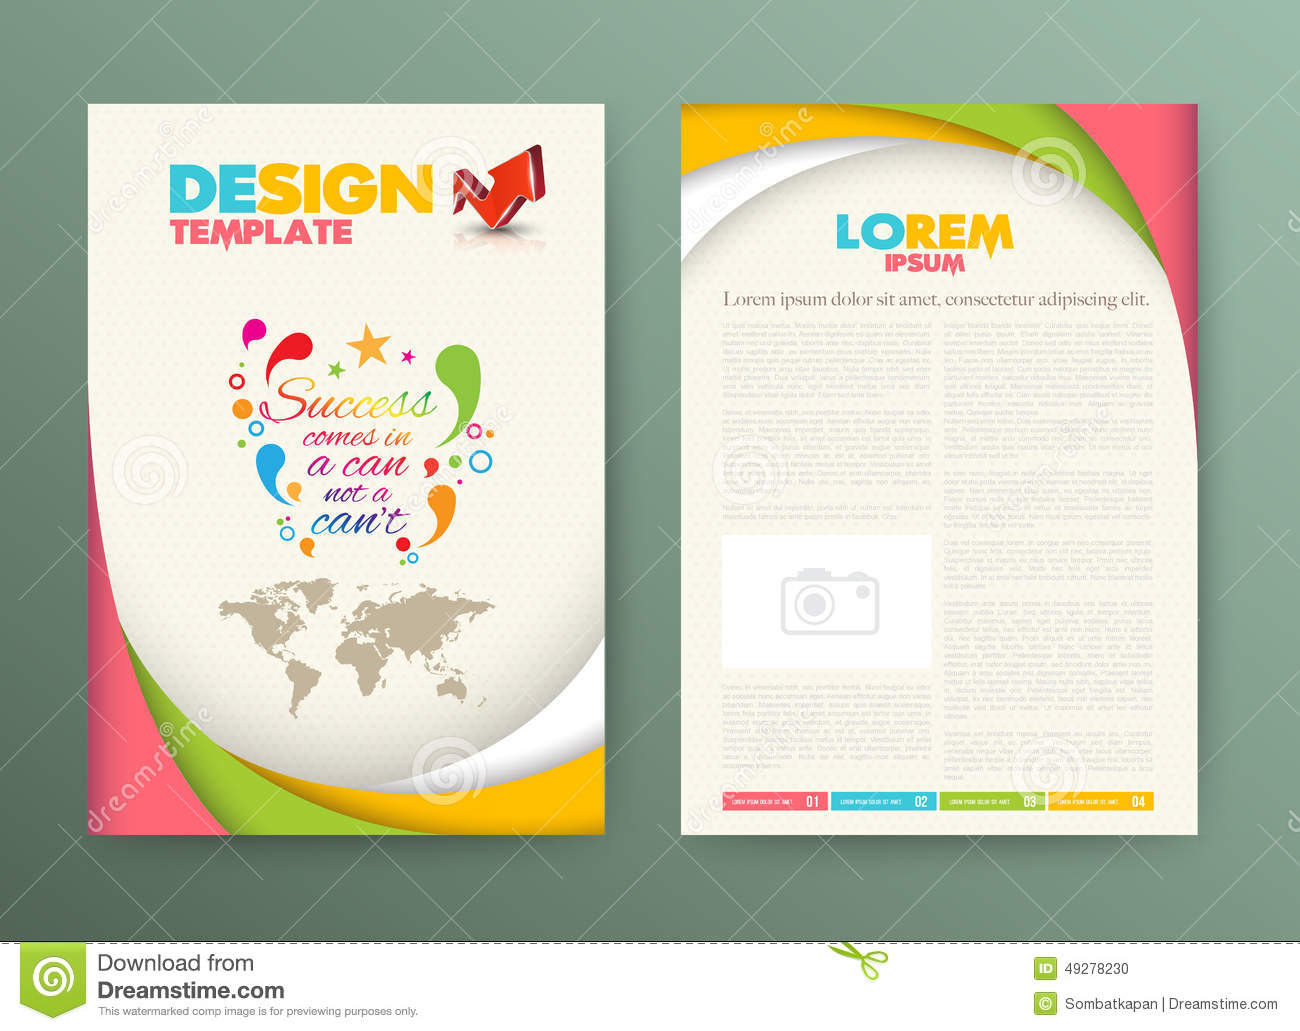 mailer templates design free - brochure flyer design layout template with success stock